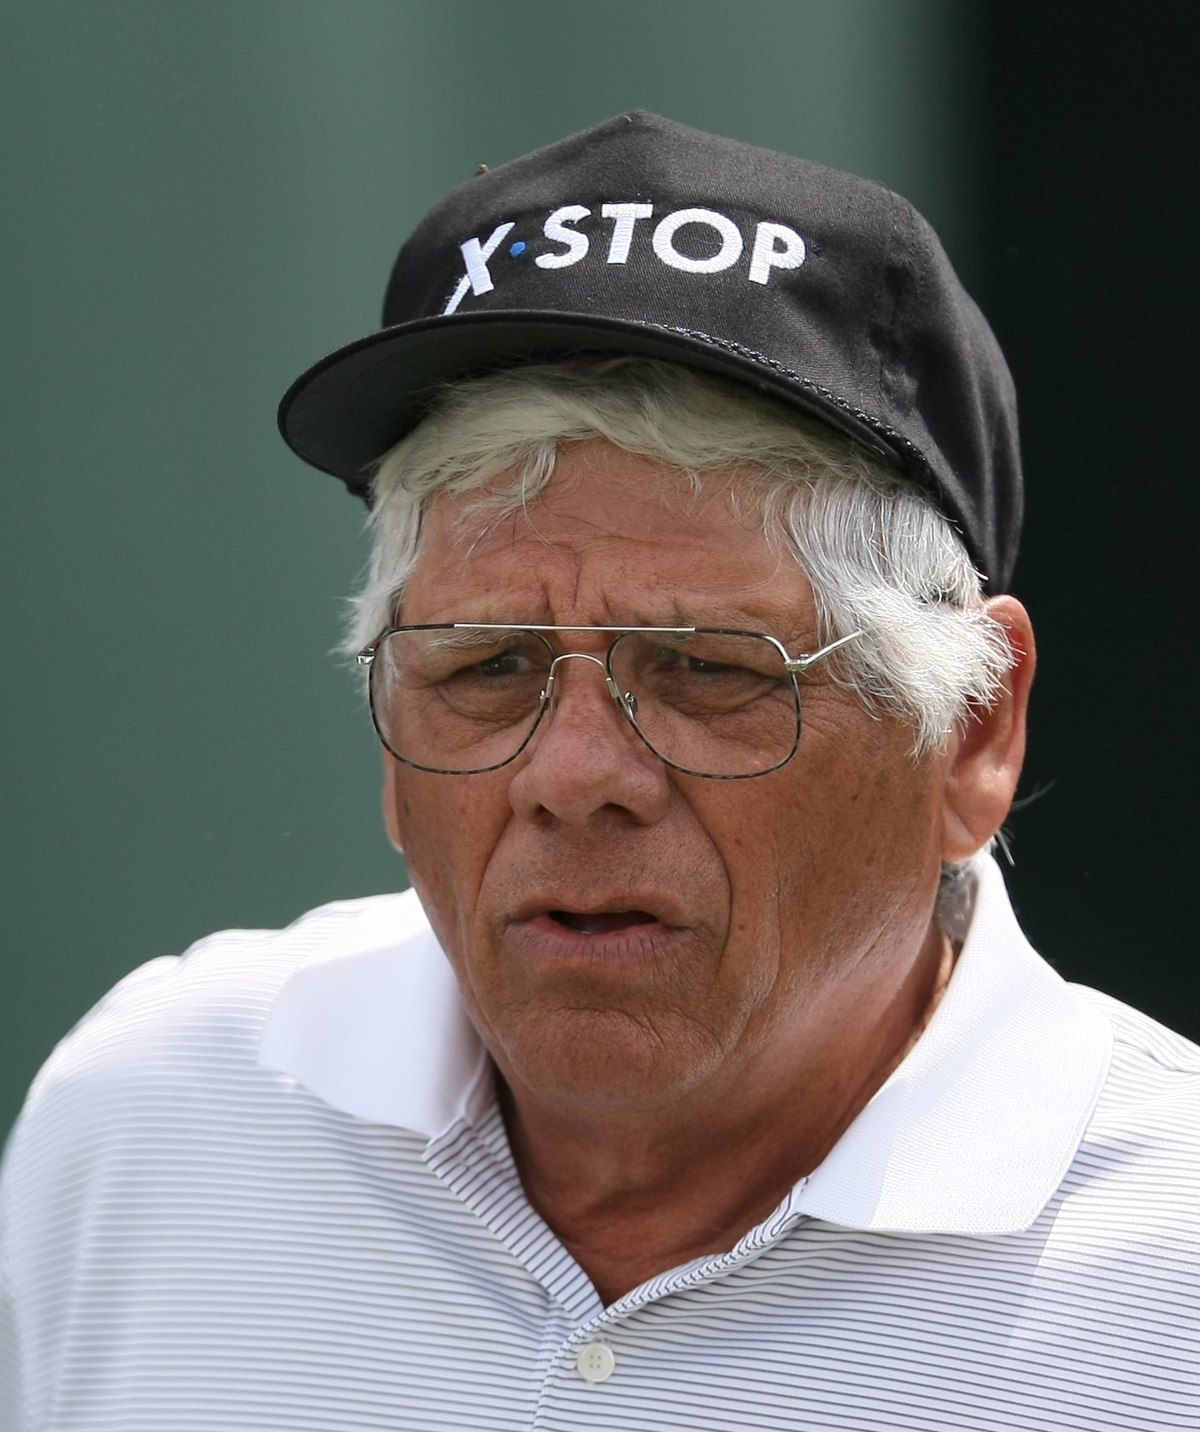 baf37c60ae Lee Trevino - Wikipedia